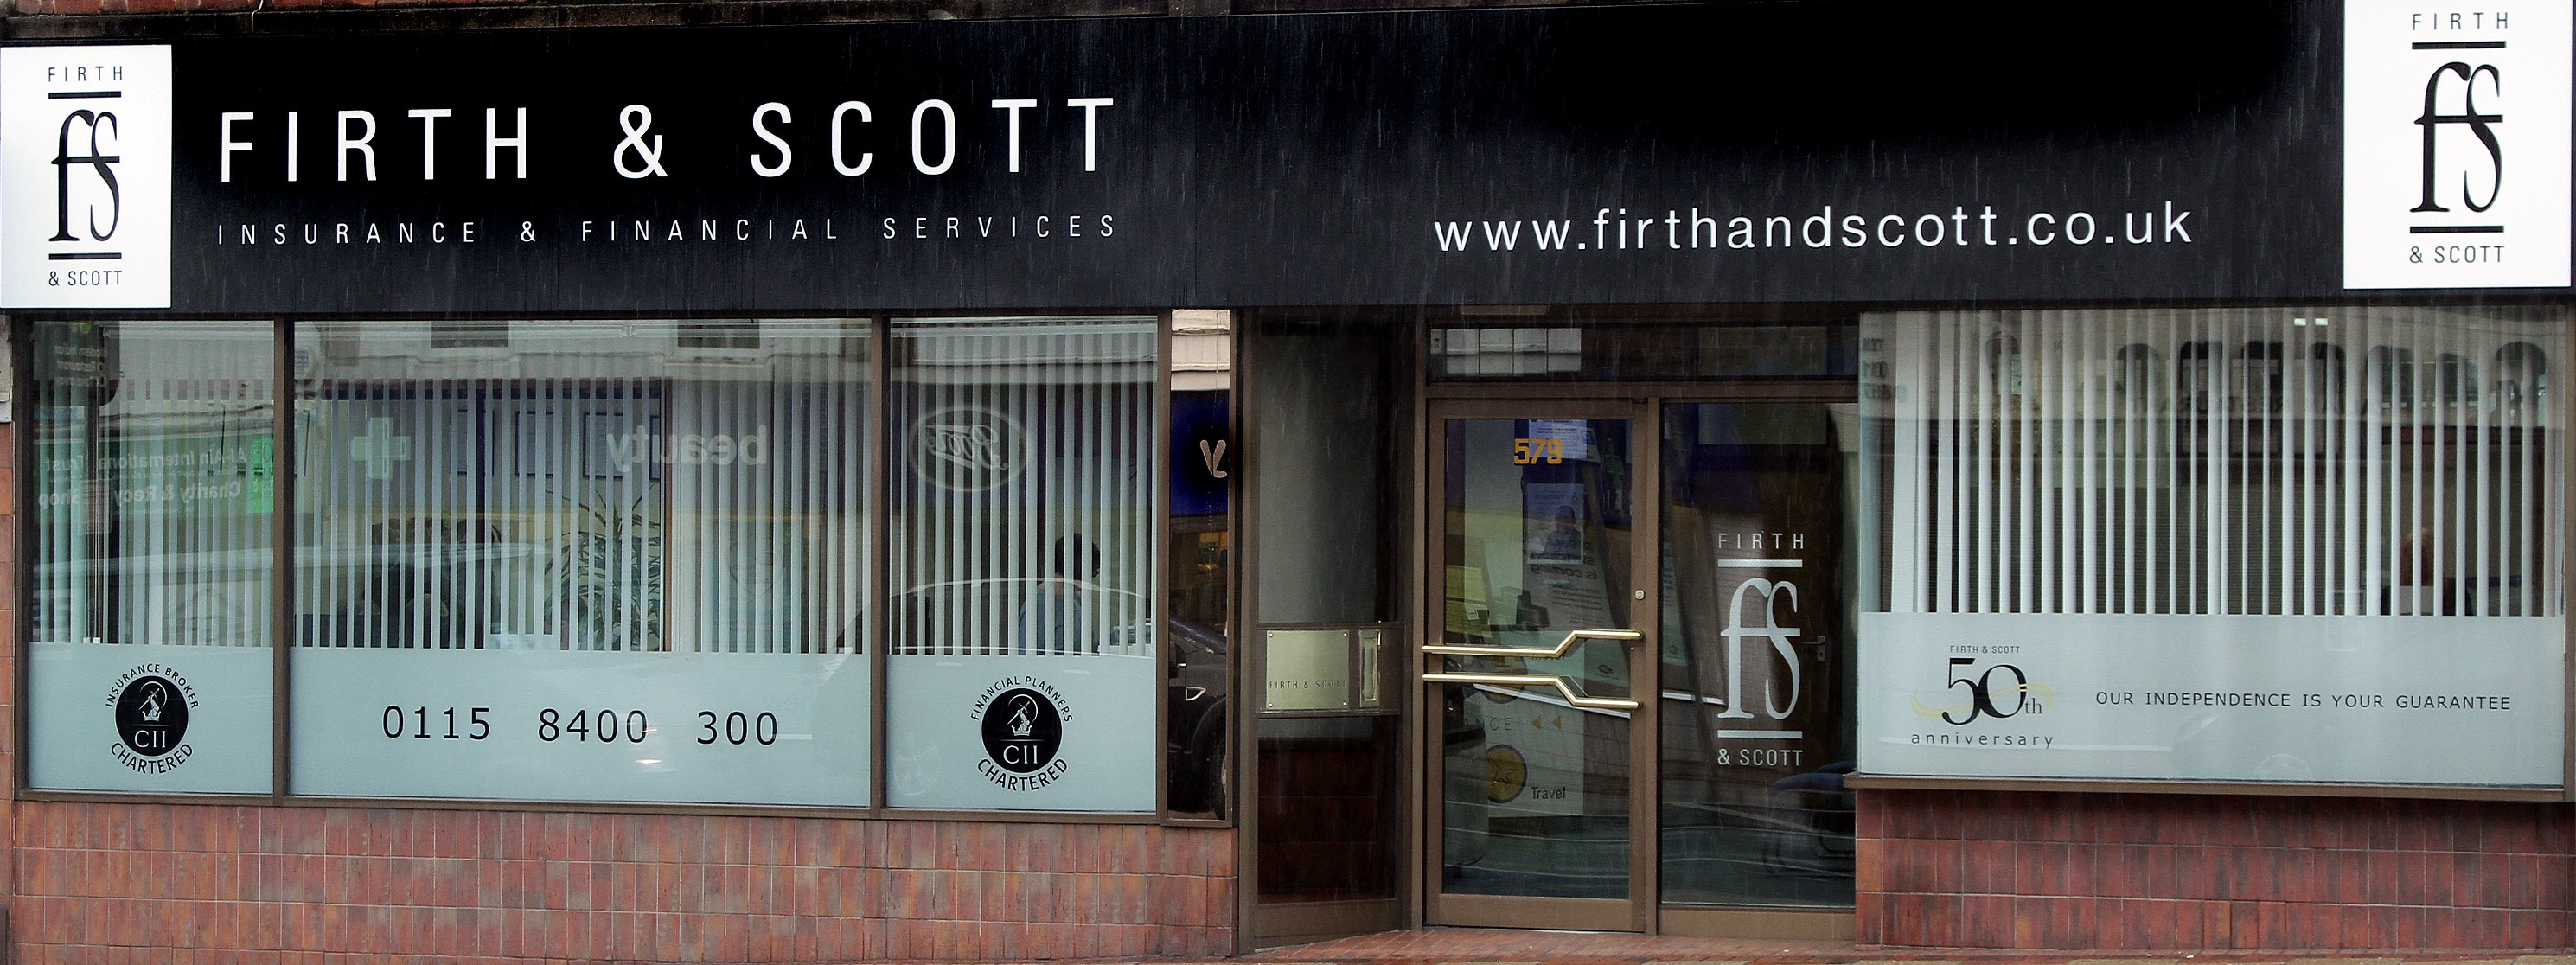 Firth & Scott Insurance Brokers have NOT sold the business and are going from strength to strength!